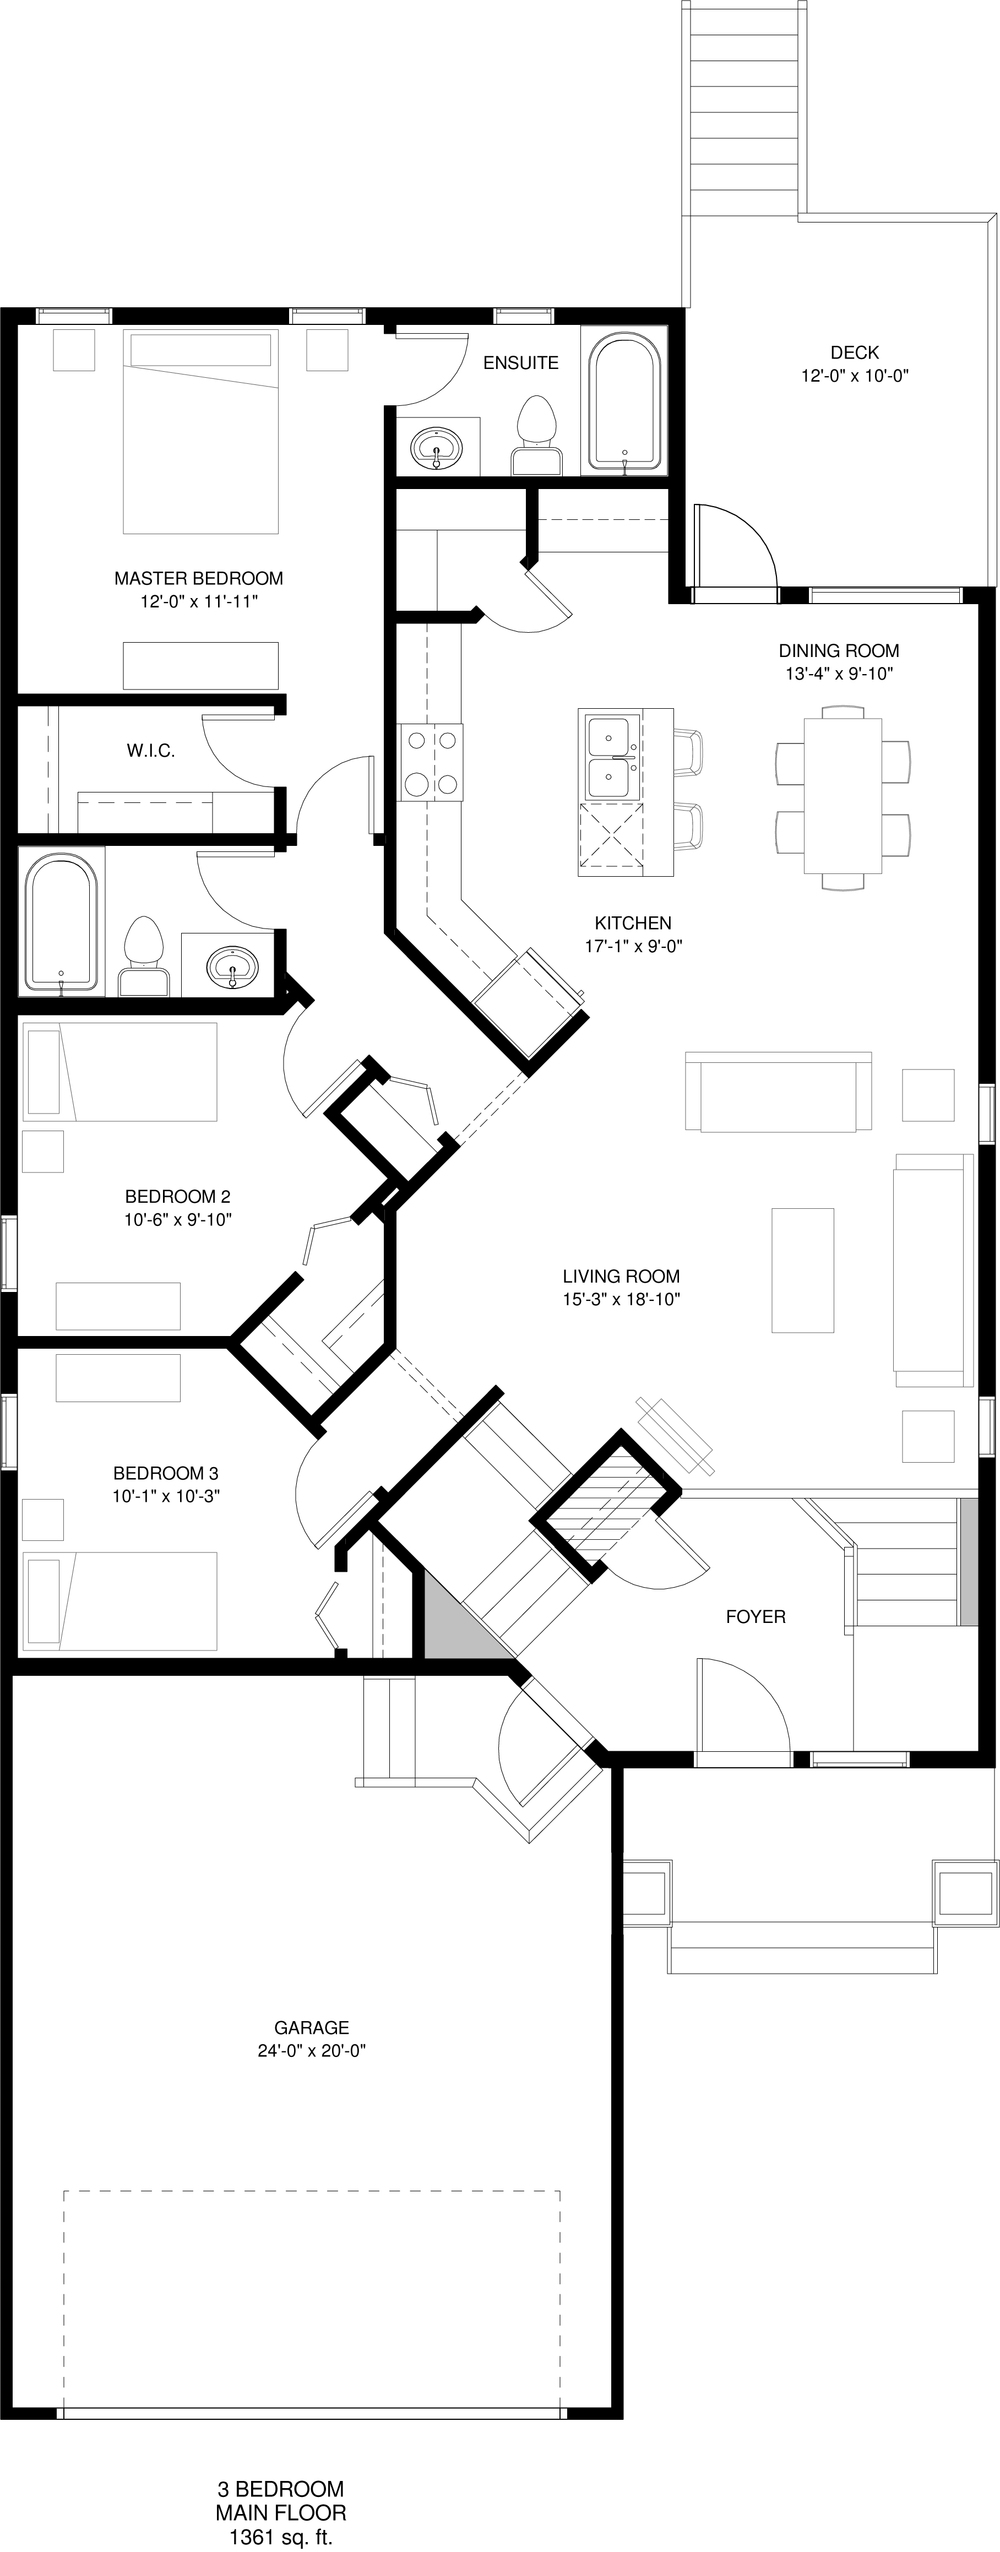 Main Floor 3 Bedroom Option 1361 sq ft